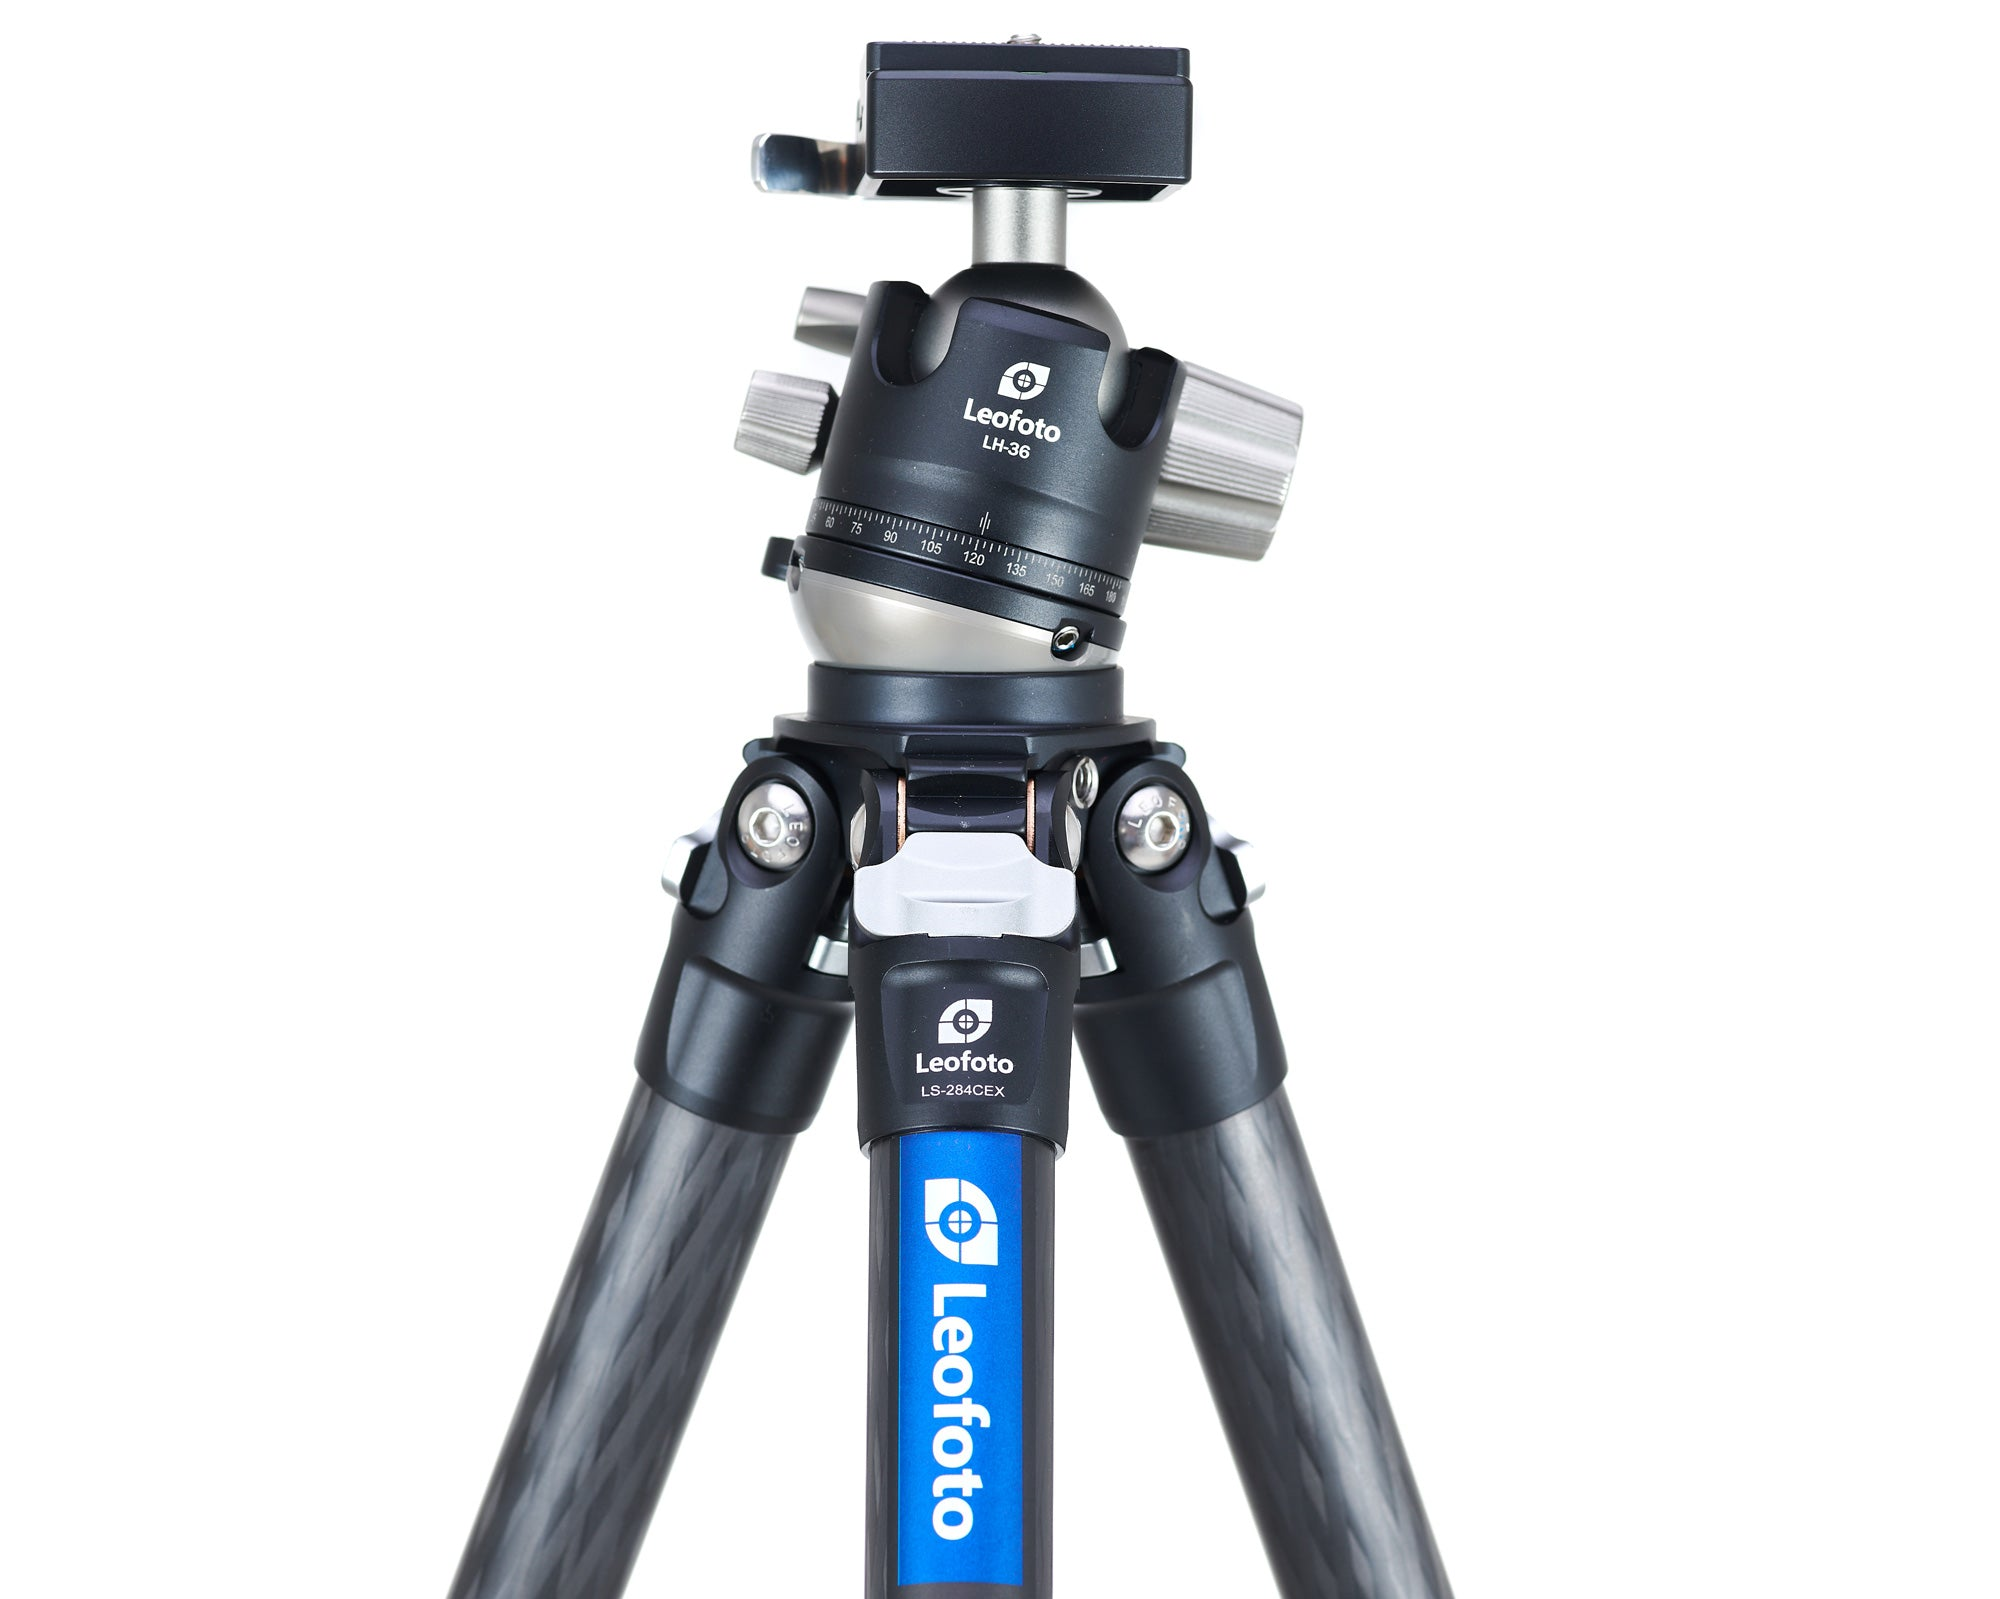 Leofoto Ranger Tripod Review by Emil von Maltitz